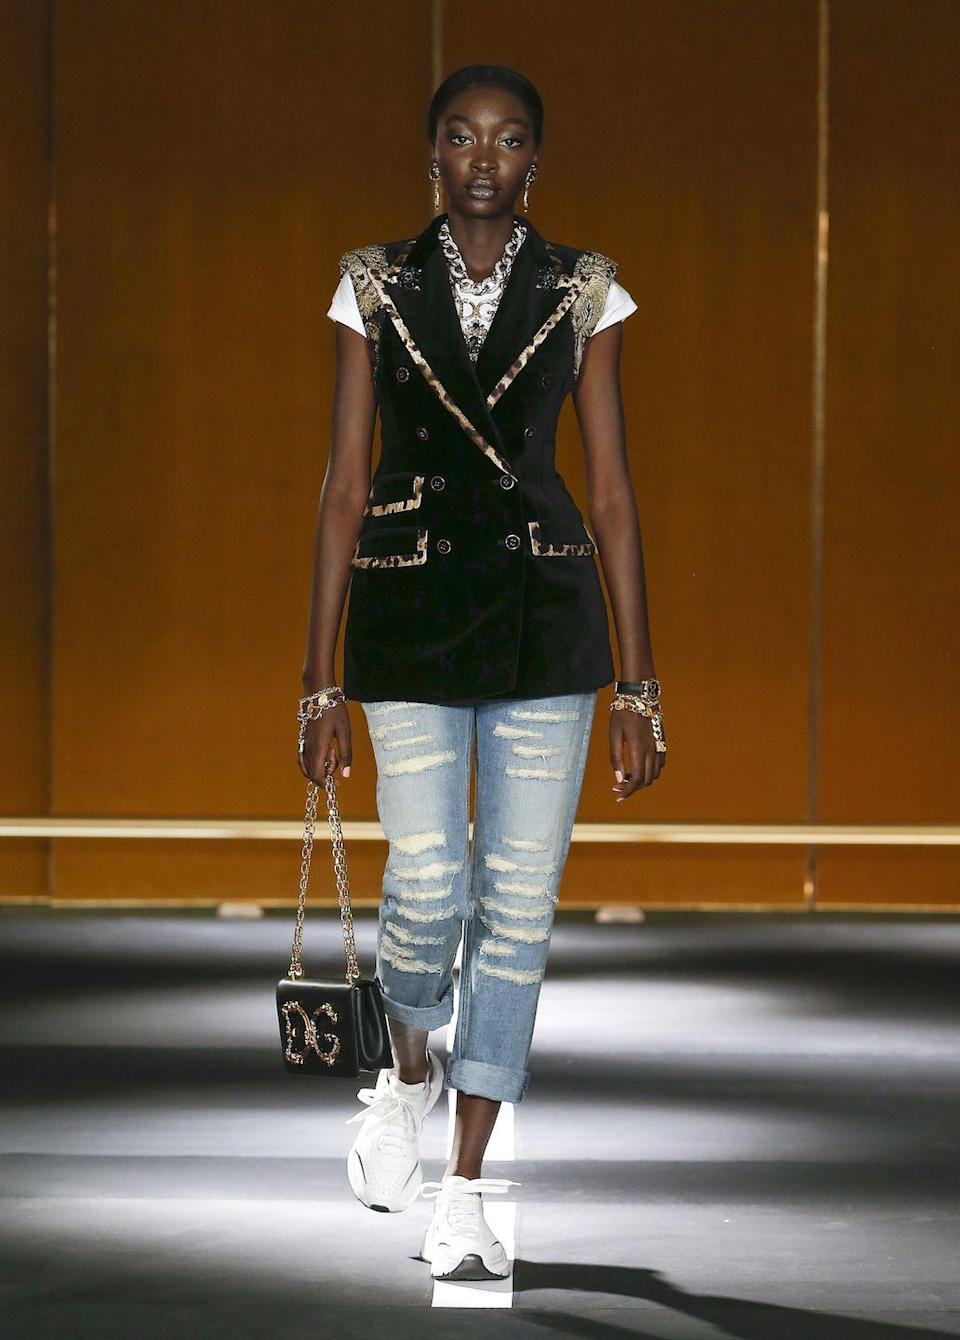 <p>Dolce And Gabbana have launched its first series of digital fashion shows on its website and social media platforms. </p><p>From November 12-13, shoppers are invited to watch a D&G 'Digital Show' before shopping the luxury fashion brand's latest collection. The shows provide 'FROW access' to shoppers, regardless of their location. </p><p>In the show, viewers will be able to see all of D&G latest designs grace the catwalk, from a mixed jacquard blazer in mustard hues and a devotion belt in lux leather to a micro-patterned wool vest with decorative buttons and a striped cotton vest with macramé flowers. This is the perfect way to see how an item moves on a model before making the decision to buy.</p>